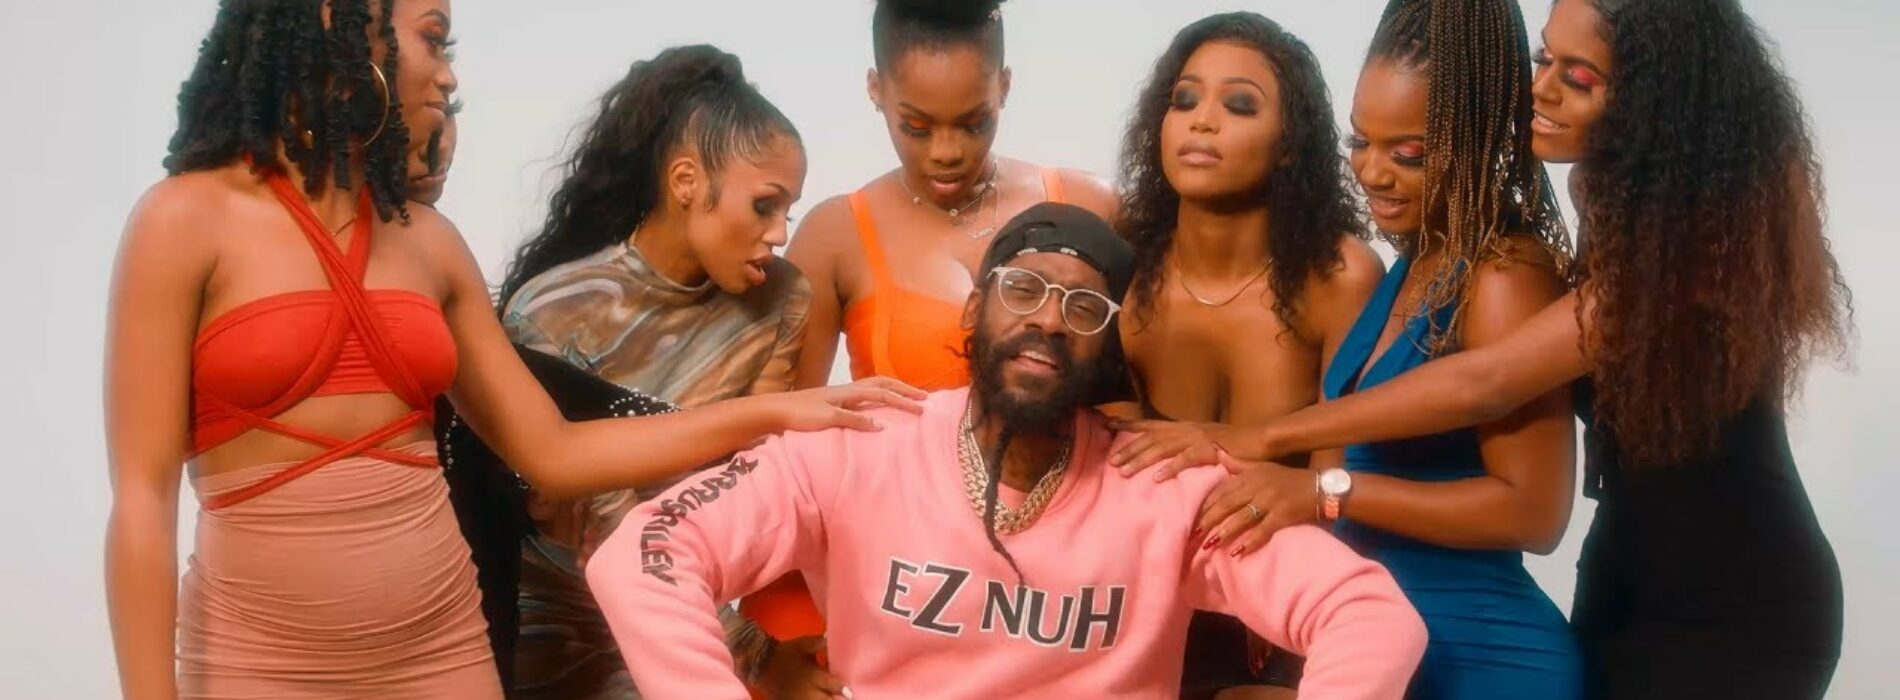 Tarrus Riley – EZ Nuh (Official Music Video) – Janvier 2021